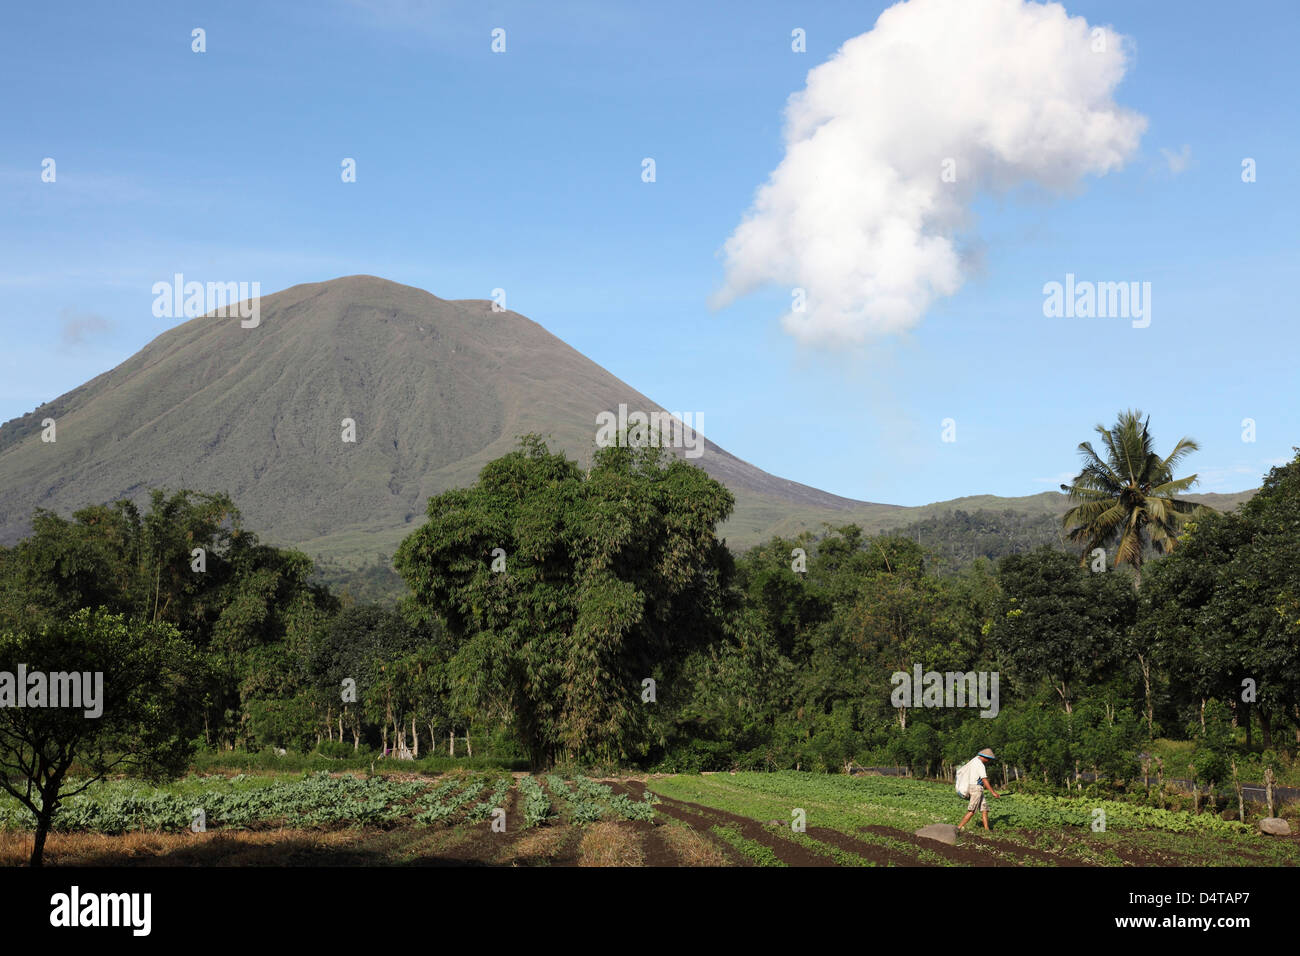 December 8, 2012 - Agriculture near Kinilow town at foot of Lokon-Empung volcano, Sulawesi, Indonesia. - Stock Image